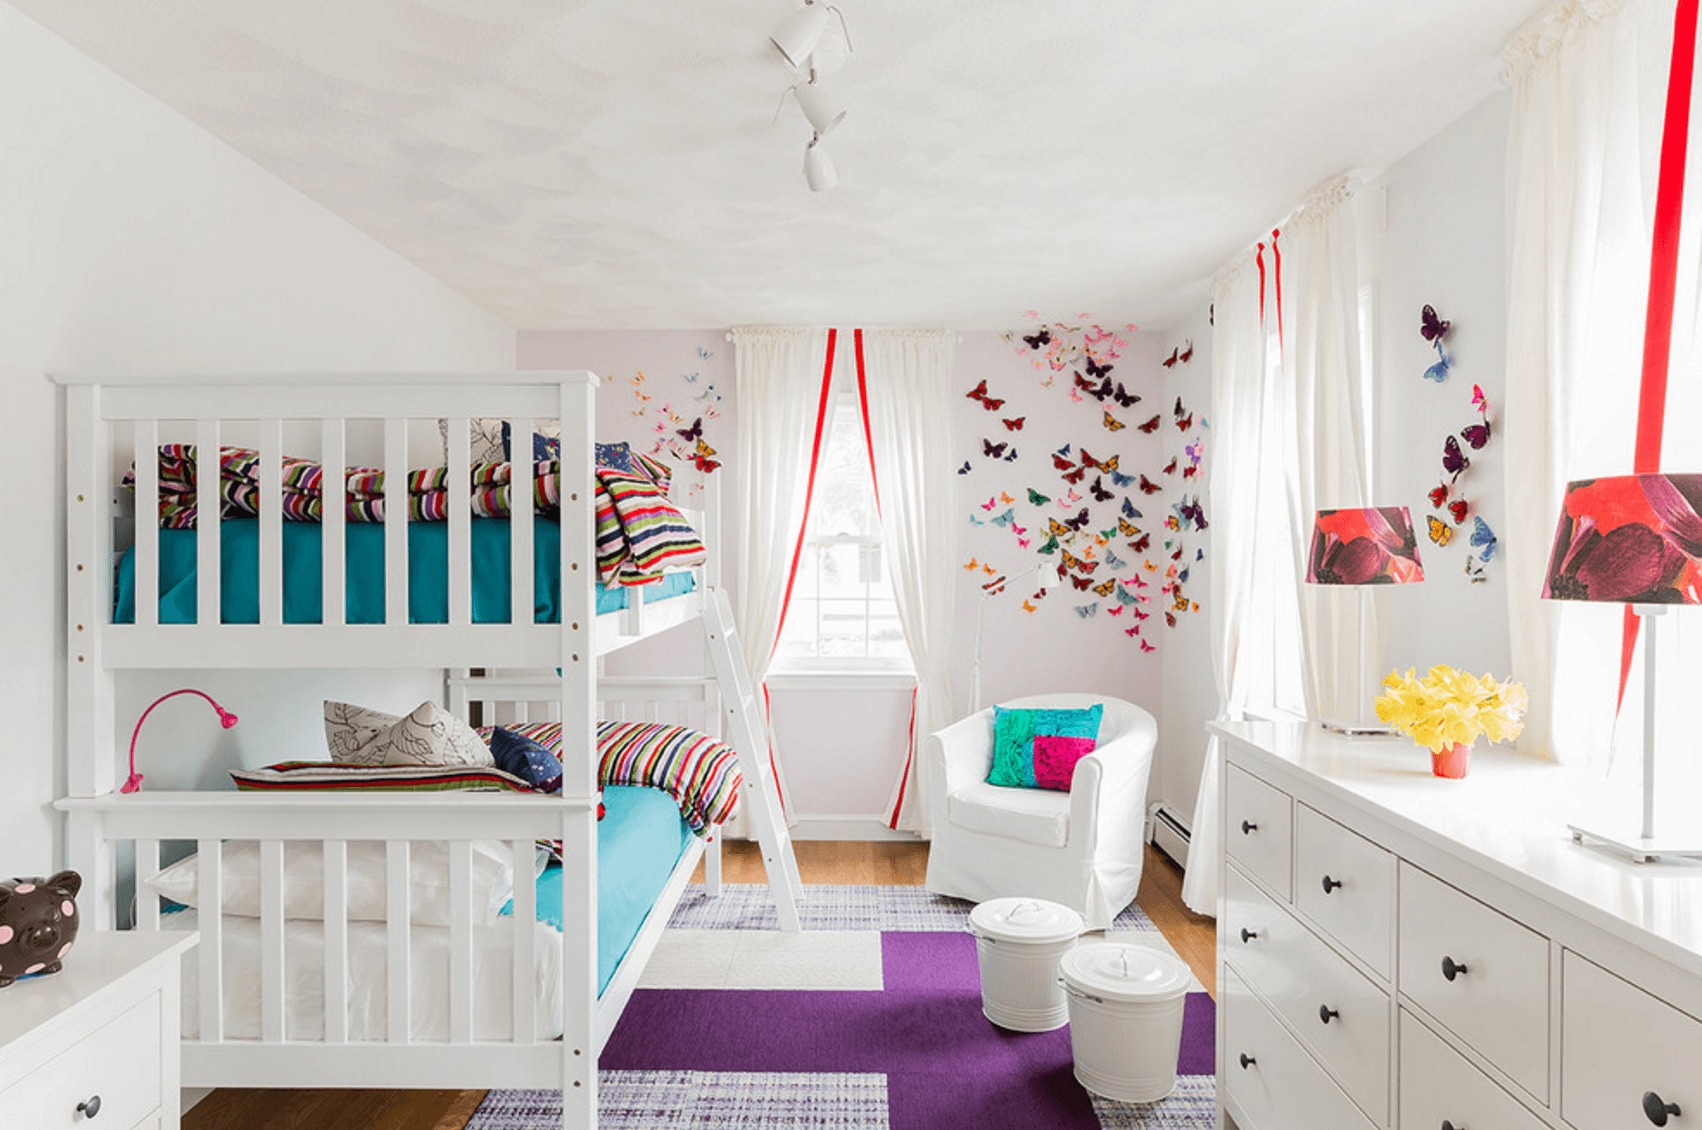 35 - Toddler bedroom ideas for small rooms ...